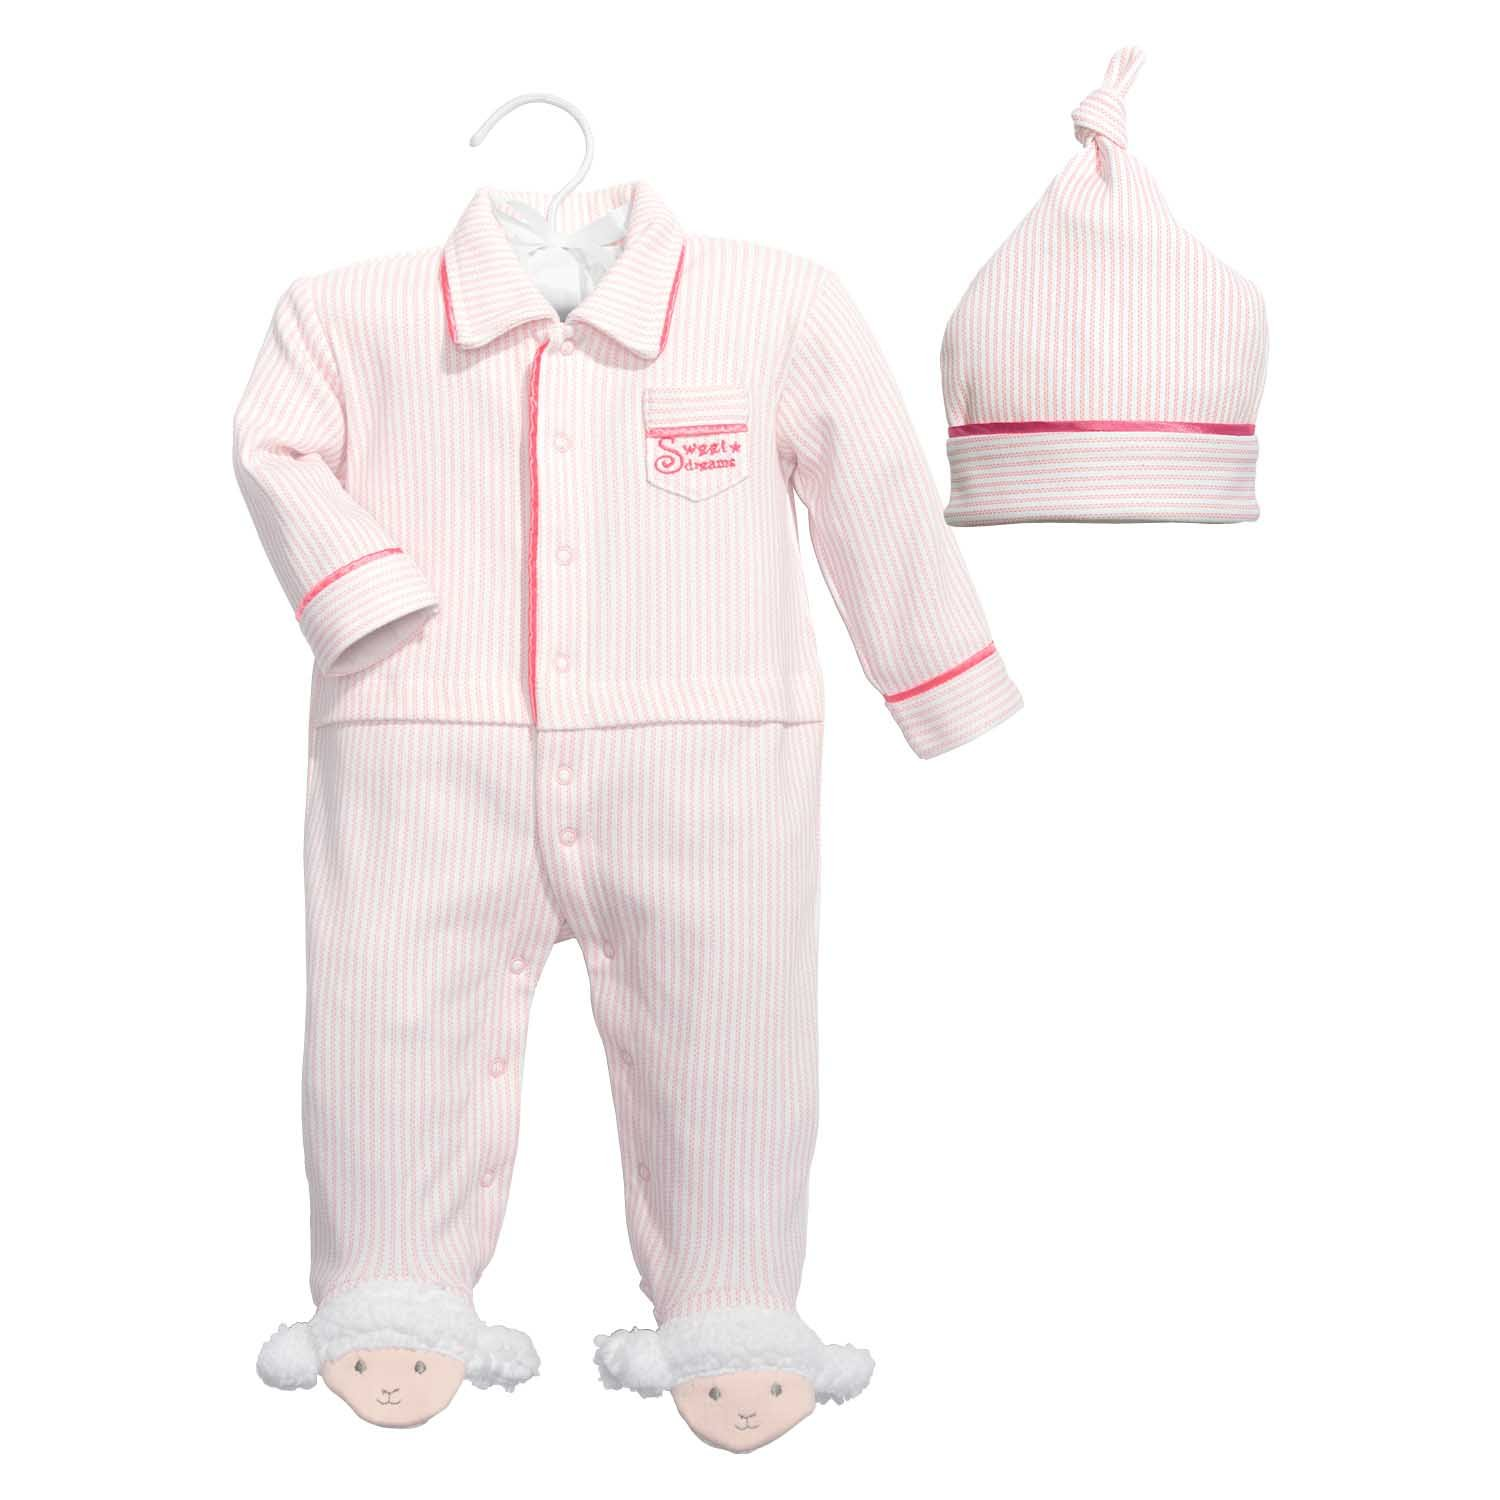 Baby Dumpling Hush Little Baby Girl's Sleep and Play Gift Set, Pink/White, 0-3 Months C.R. Gibson 108-G5M3